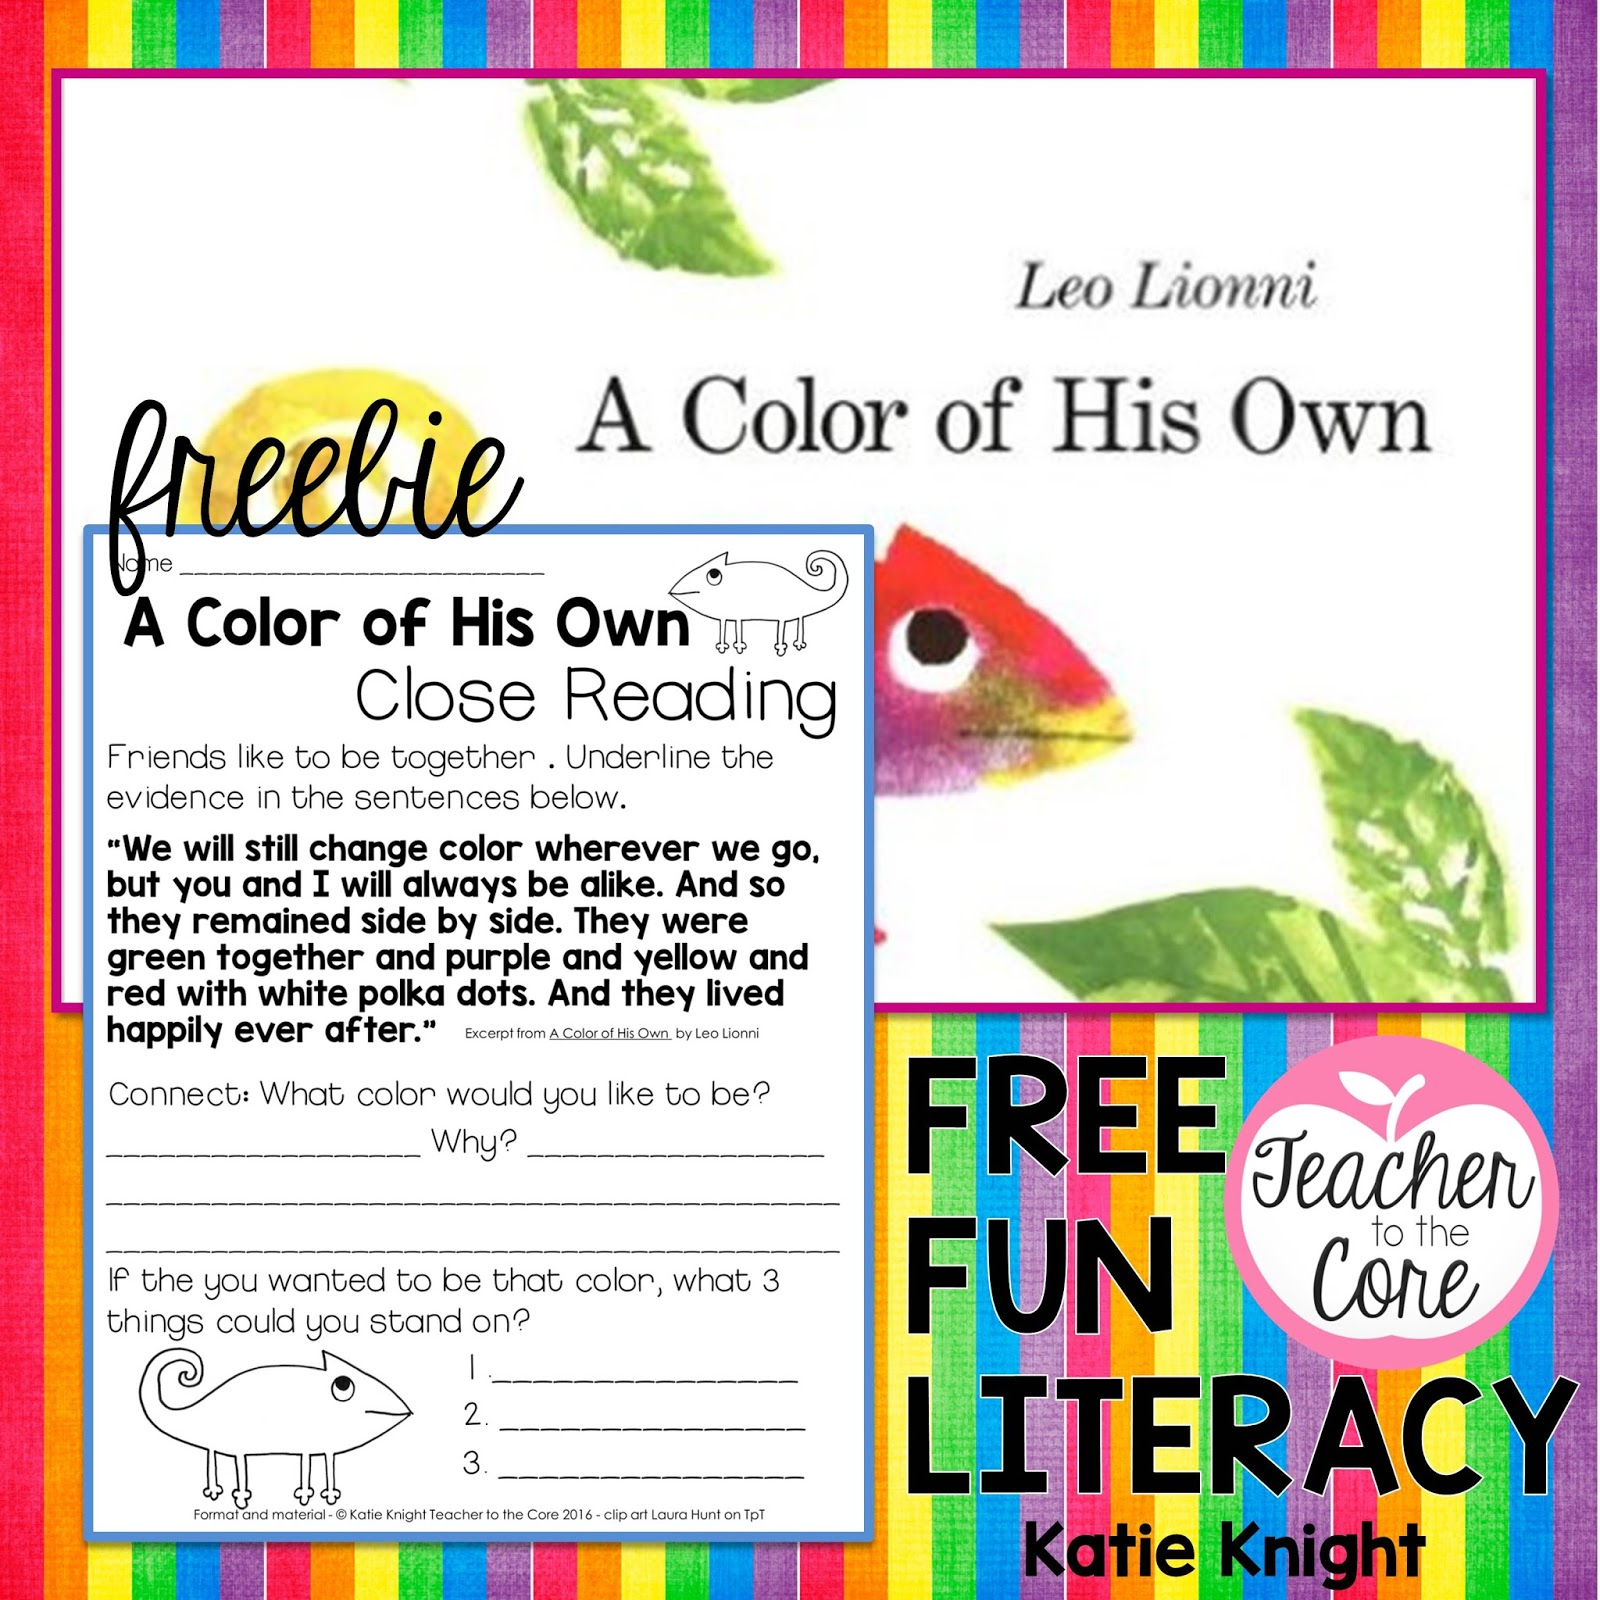 teacher to the core stepping up classroom literacy close i am delighted to announce another close reading bie this goes the book a color of his own by leo lionni i am obsessed close reading and the